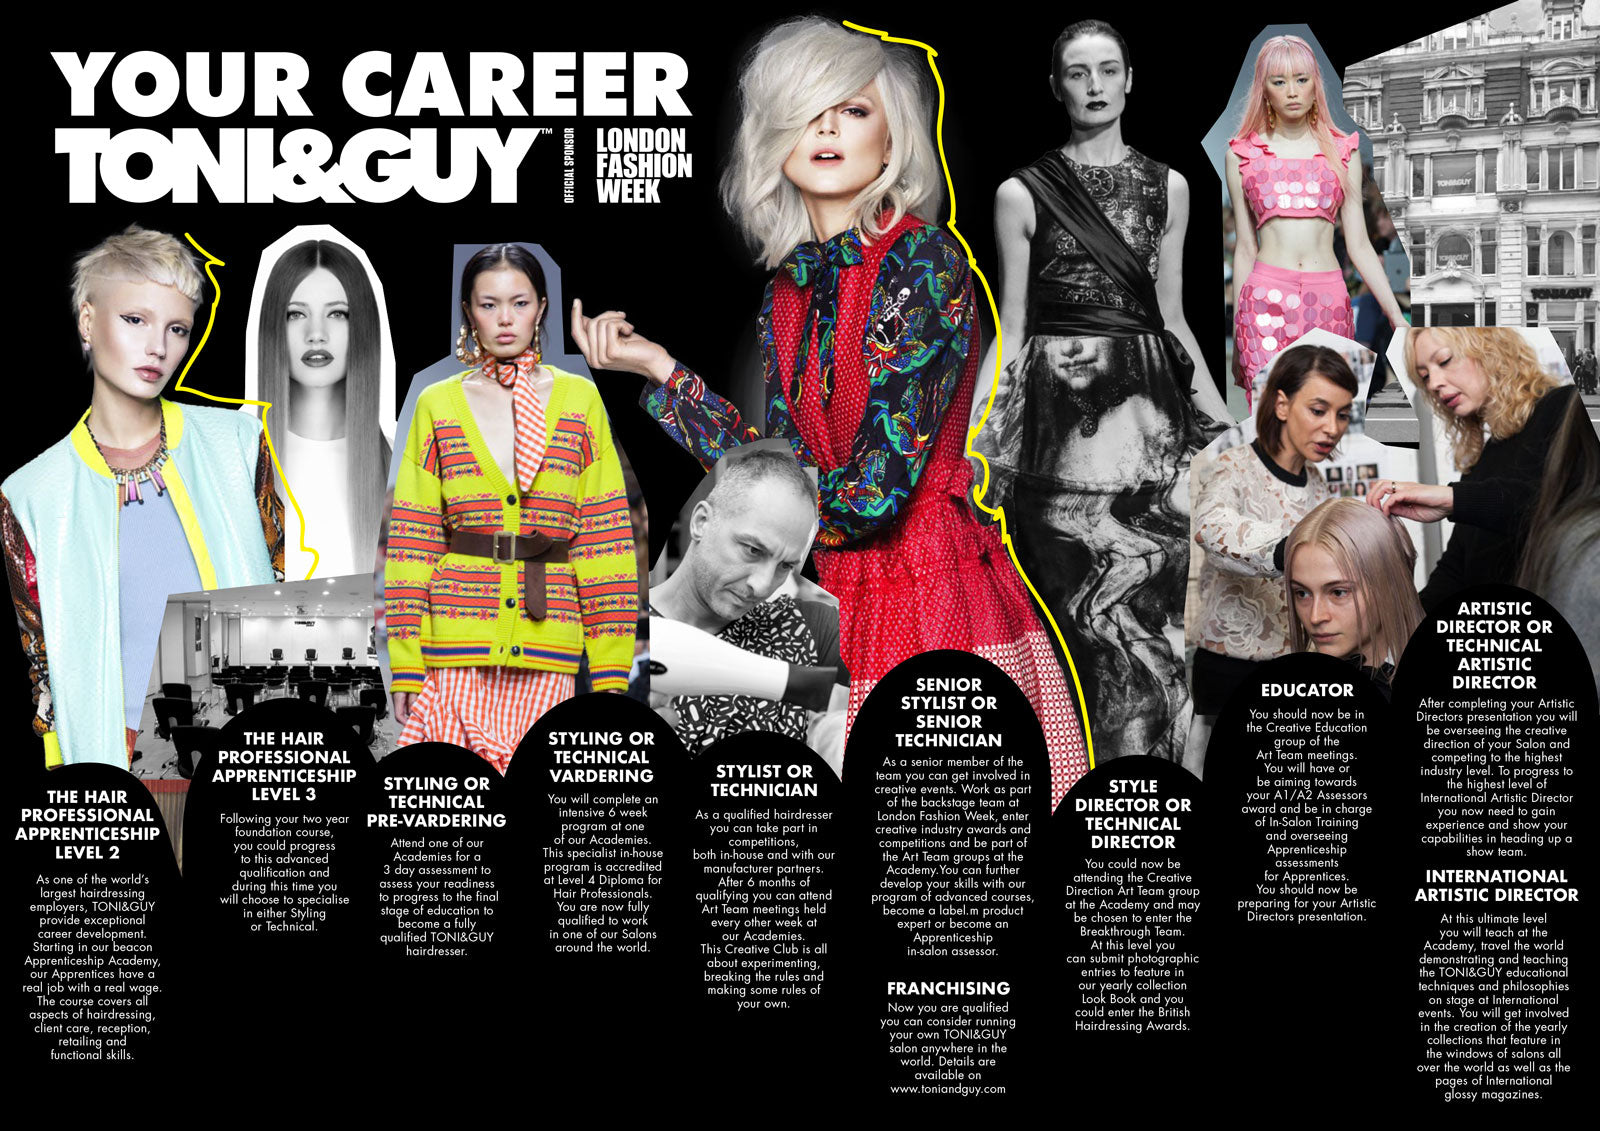 Toni & Guy Careers